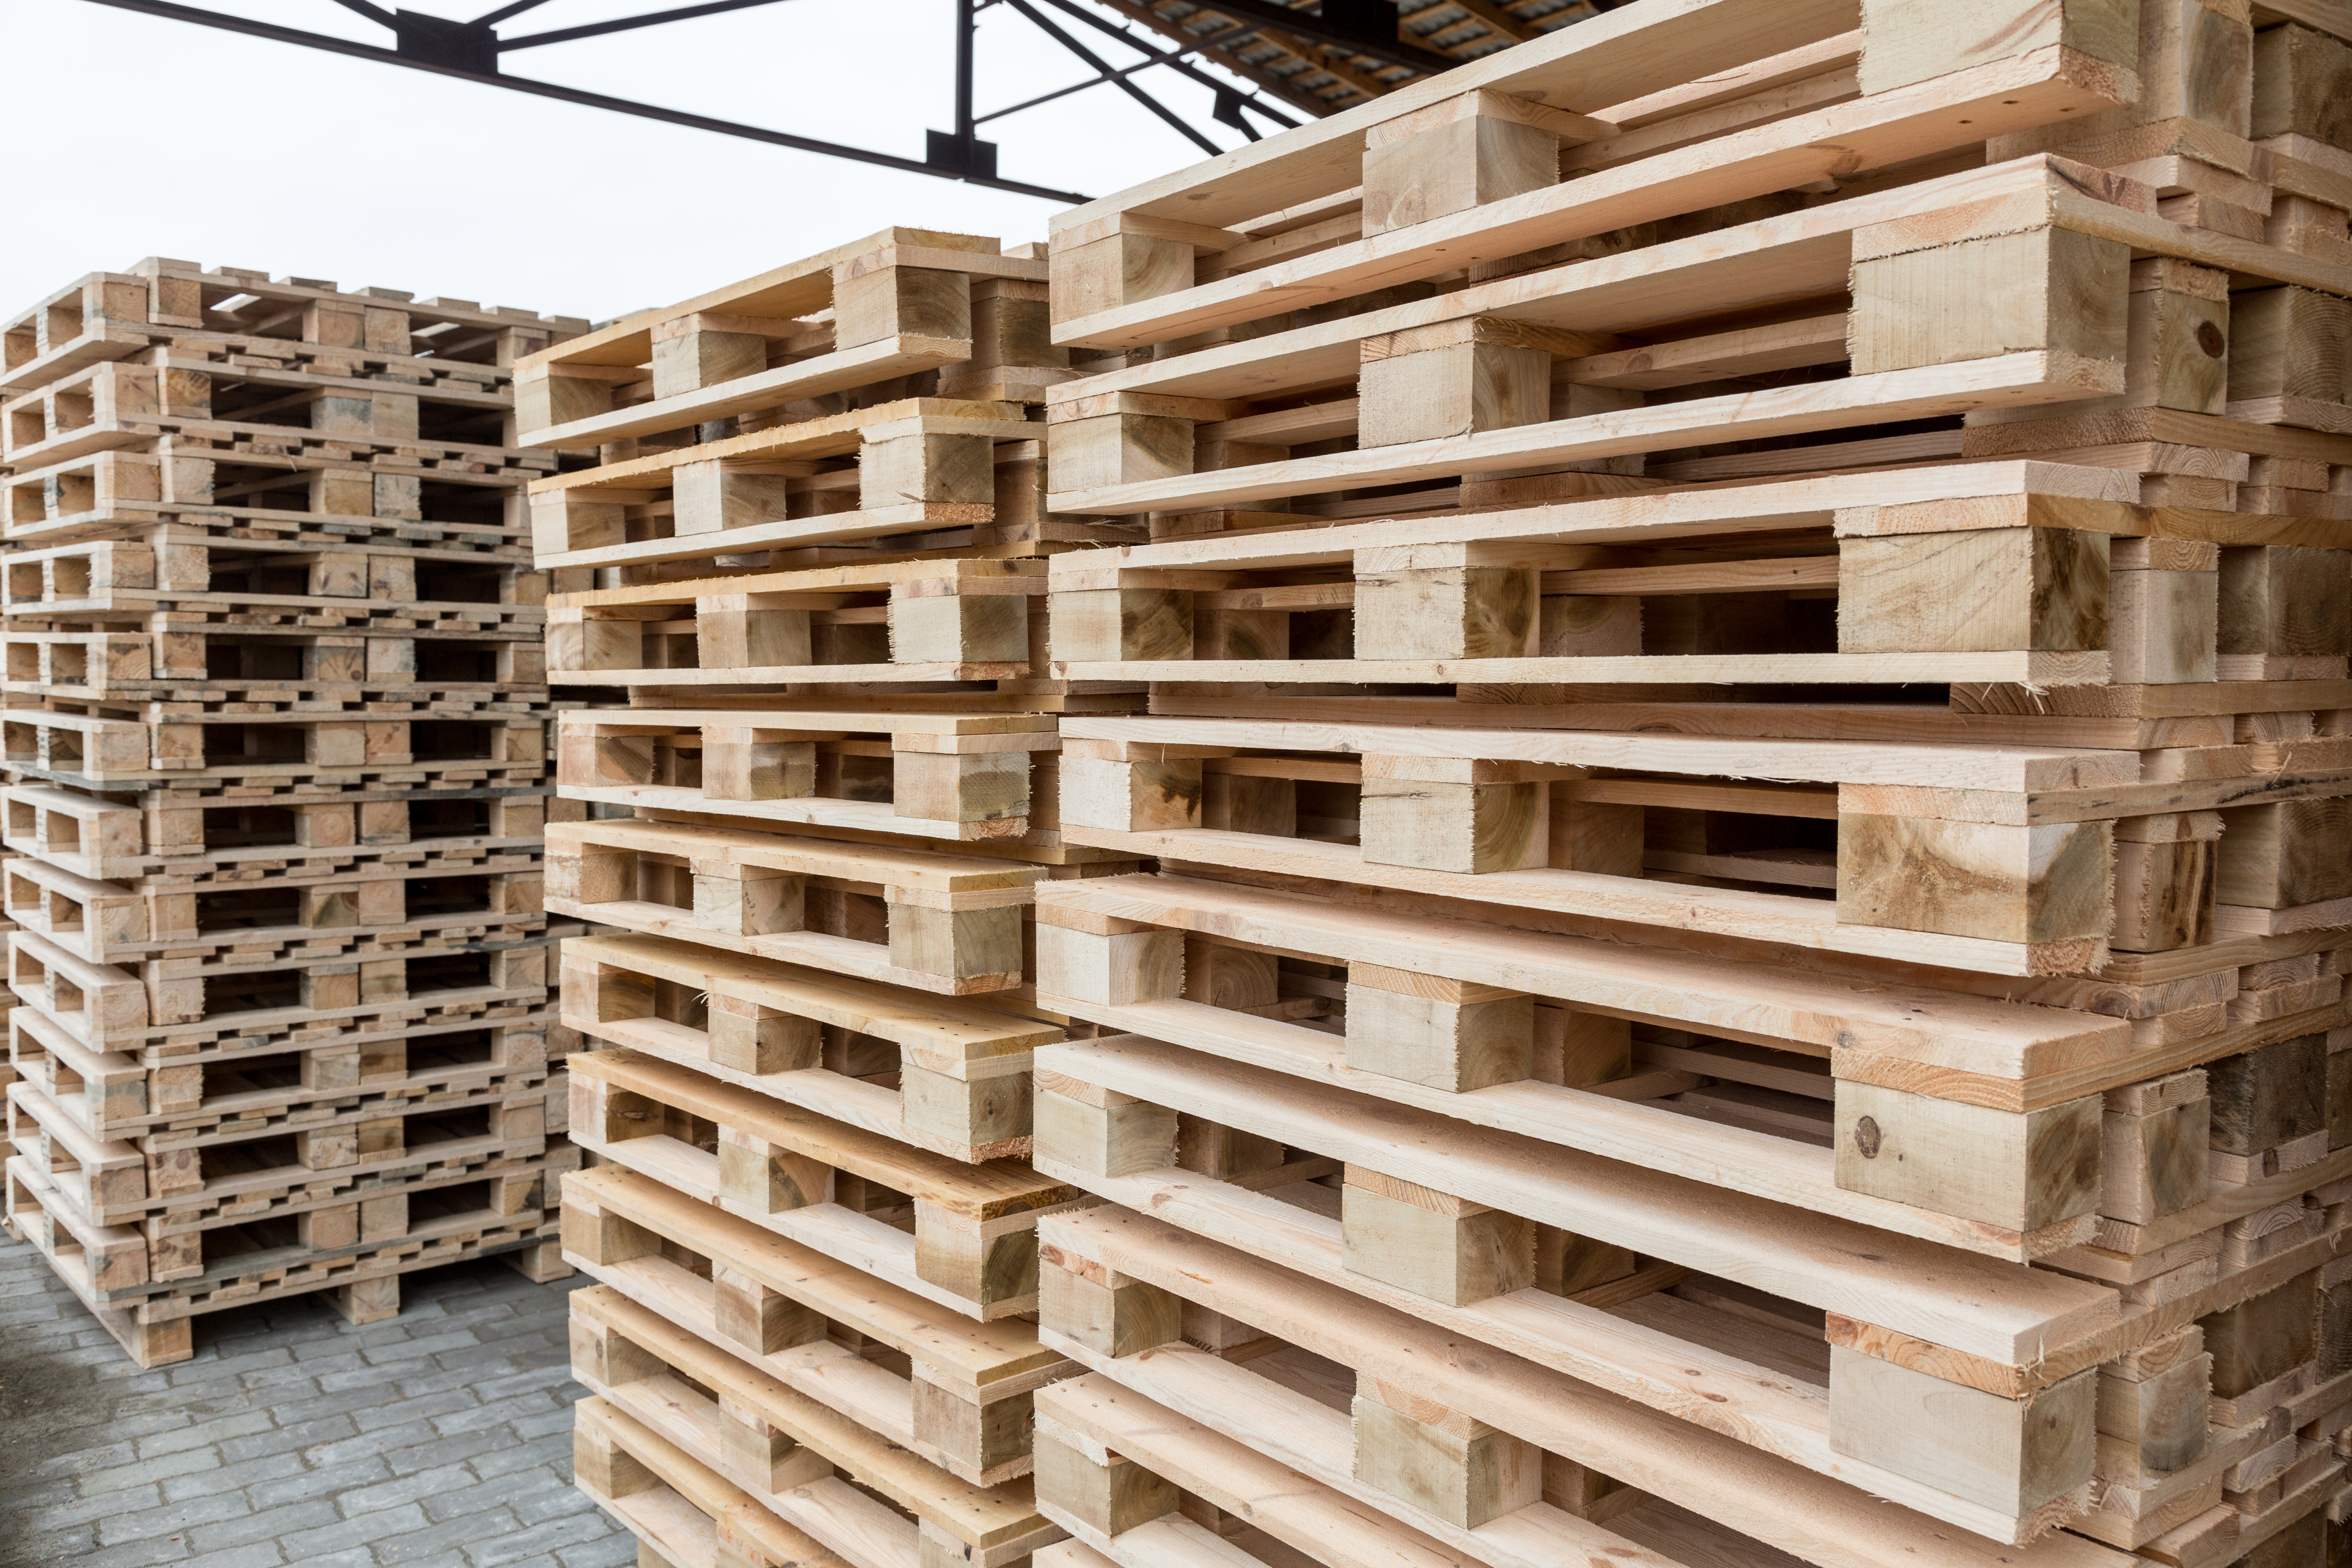 Stock Piles of wooden pallets in a yard